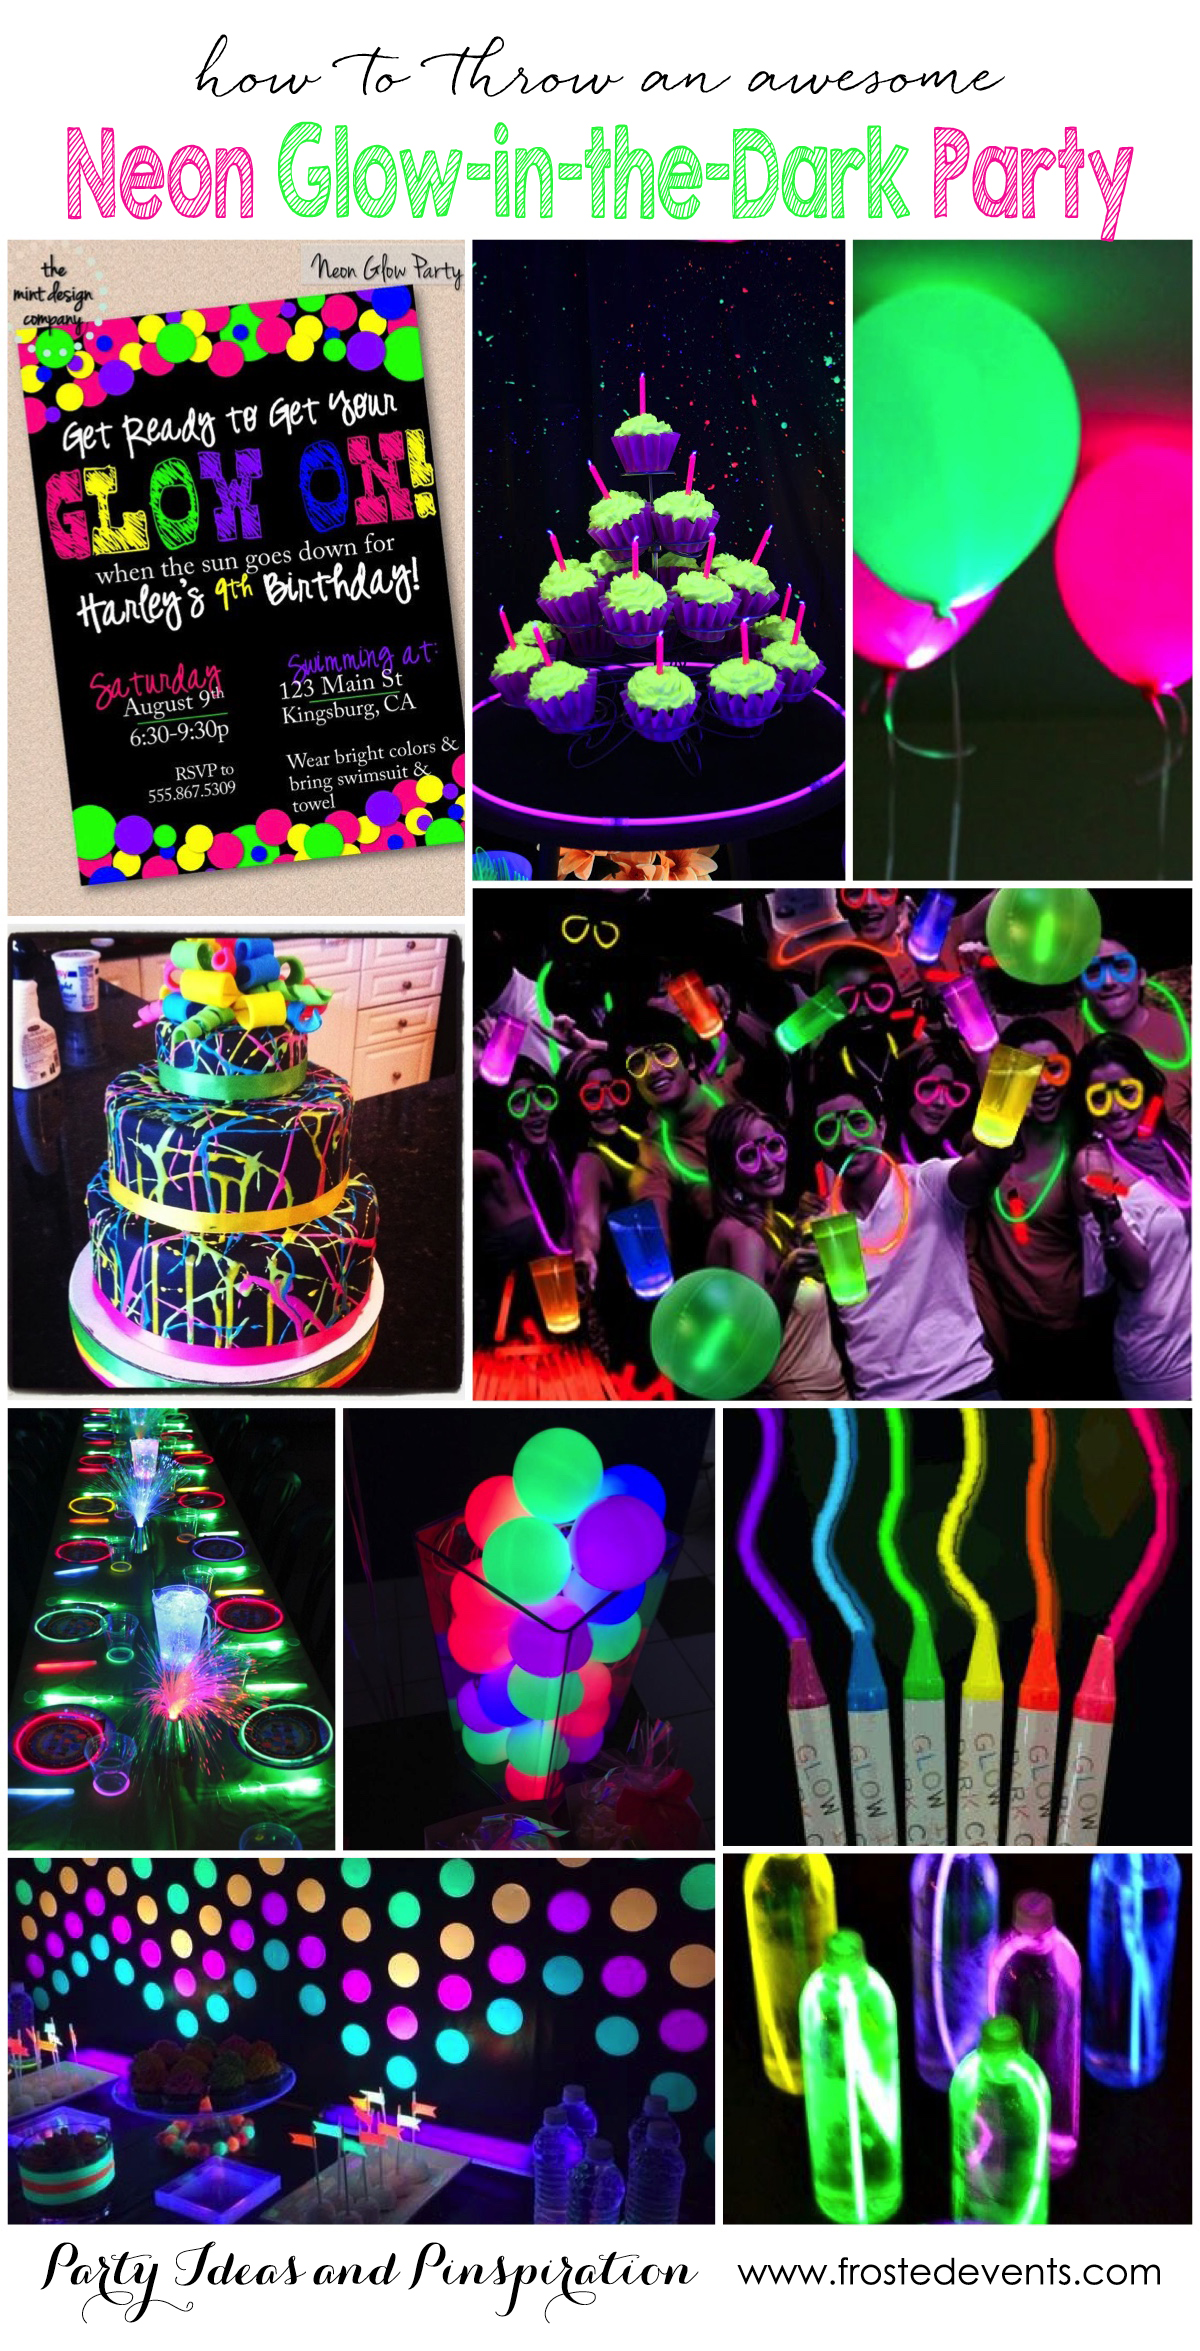 Marvelous Christmas Party Ideas For Tweens Part - 5: Party Themes - Neon Glow In The Dark Party Ideas Frostedevents.com